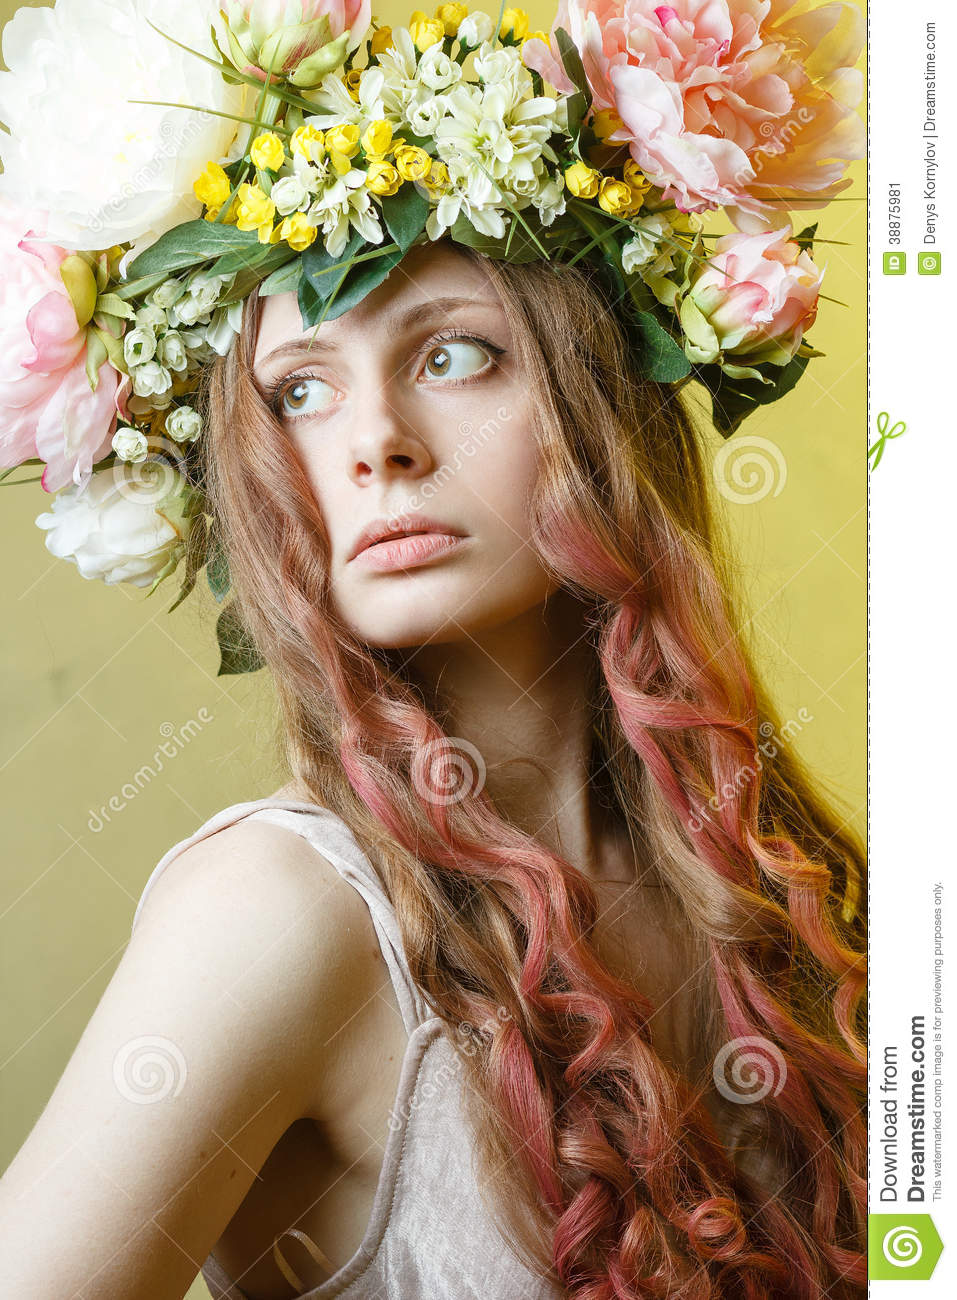 Pretty Girl With Flower Crown On Head Stock Image Image Of